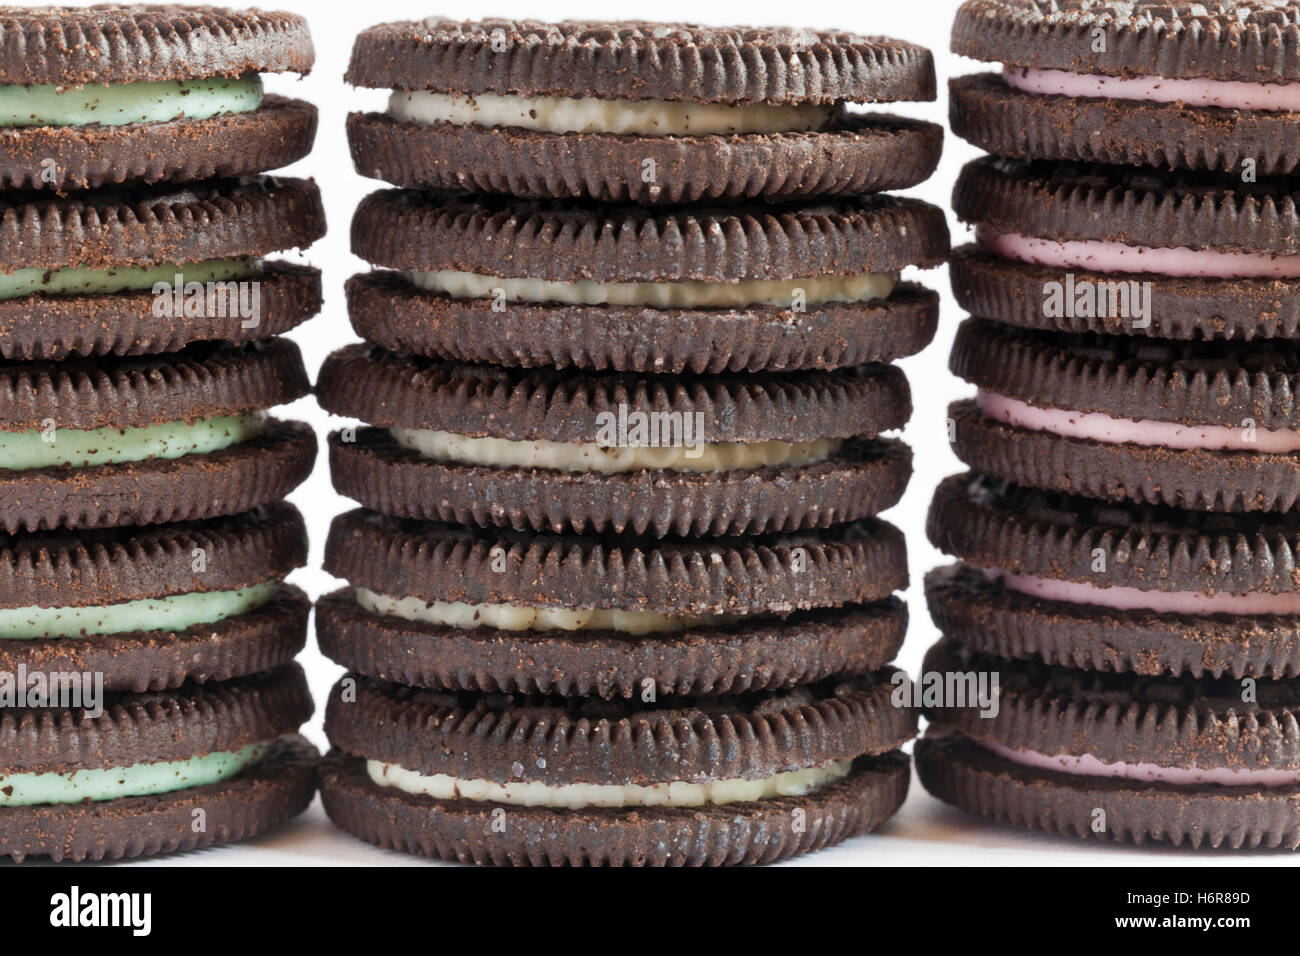 Stack of Mint flavour, Original flavour and Strawberry Cheesecake flavour Oreo biscuits set on white background - Stock Image